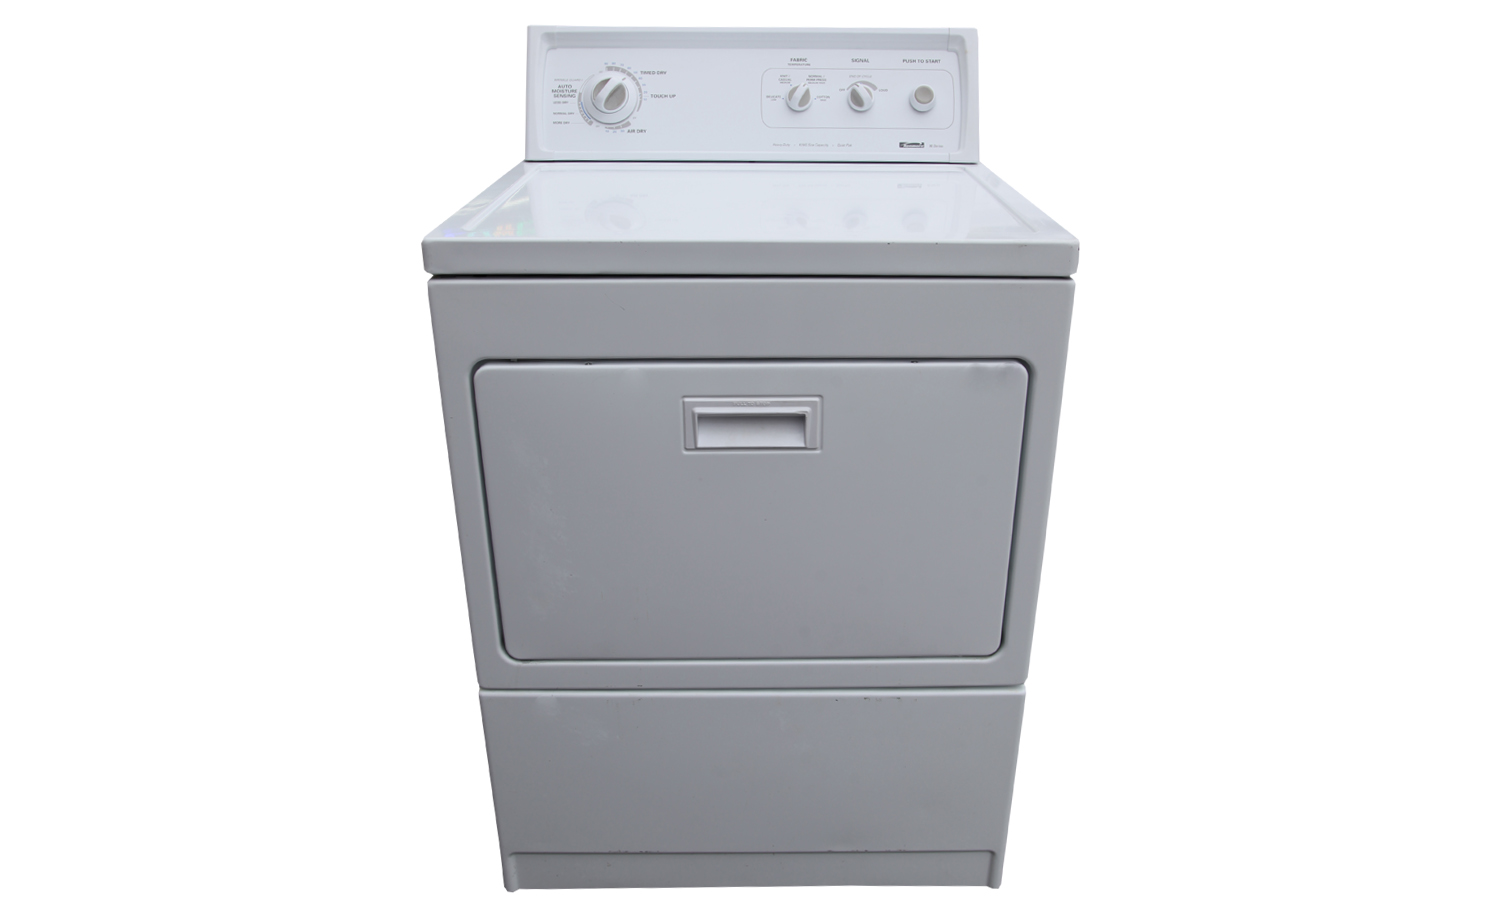 DRYER KENMORE 90 SERIES (ELECTRIC DRYER) | APPLIANCES Pictures Of Duty